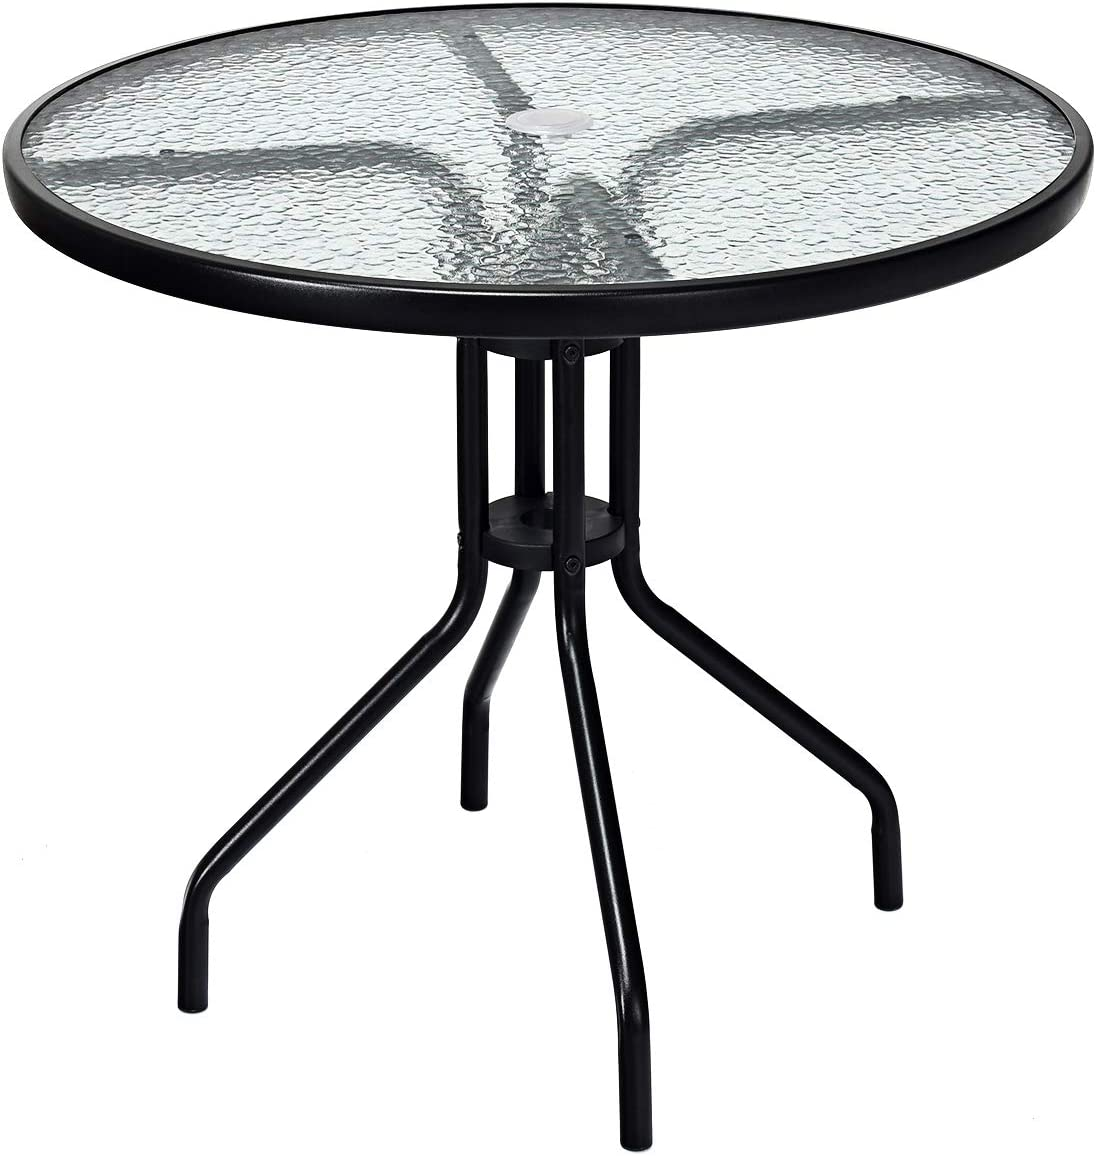 Goplus 32 Outdoor Patio Table Round Shape Steel Frame Tempered Glass Top with Umbrella Hole Commercial Party Event Furniture Conversation Coffee Table for Backyard Lawn Balcony Pool Black